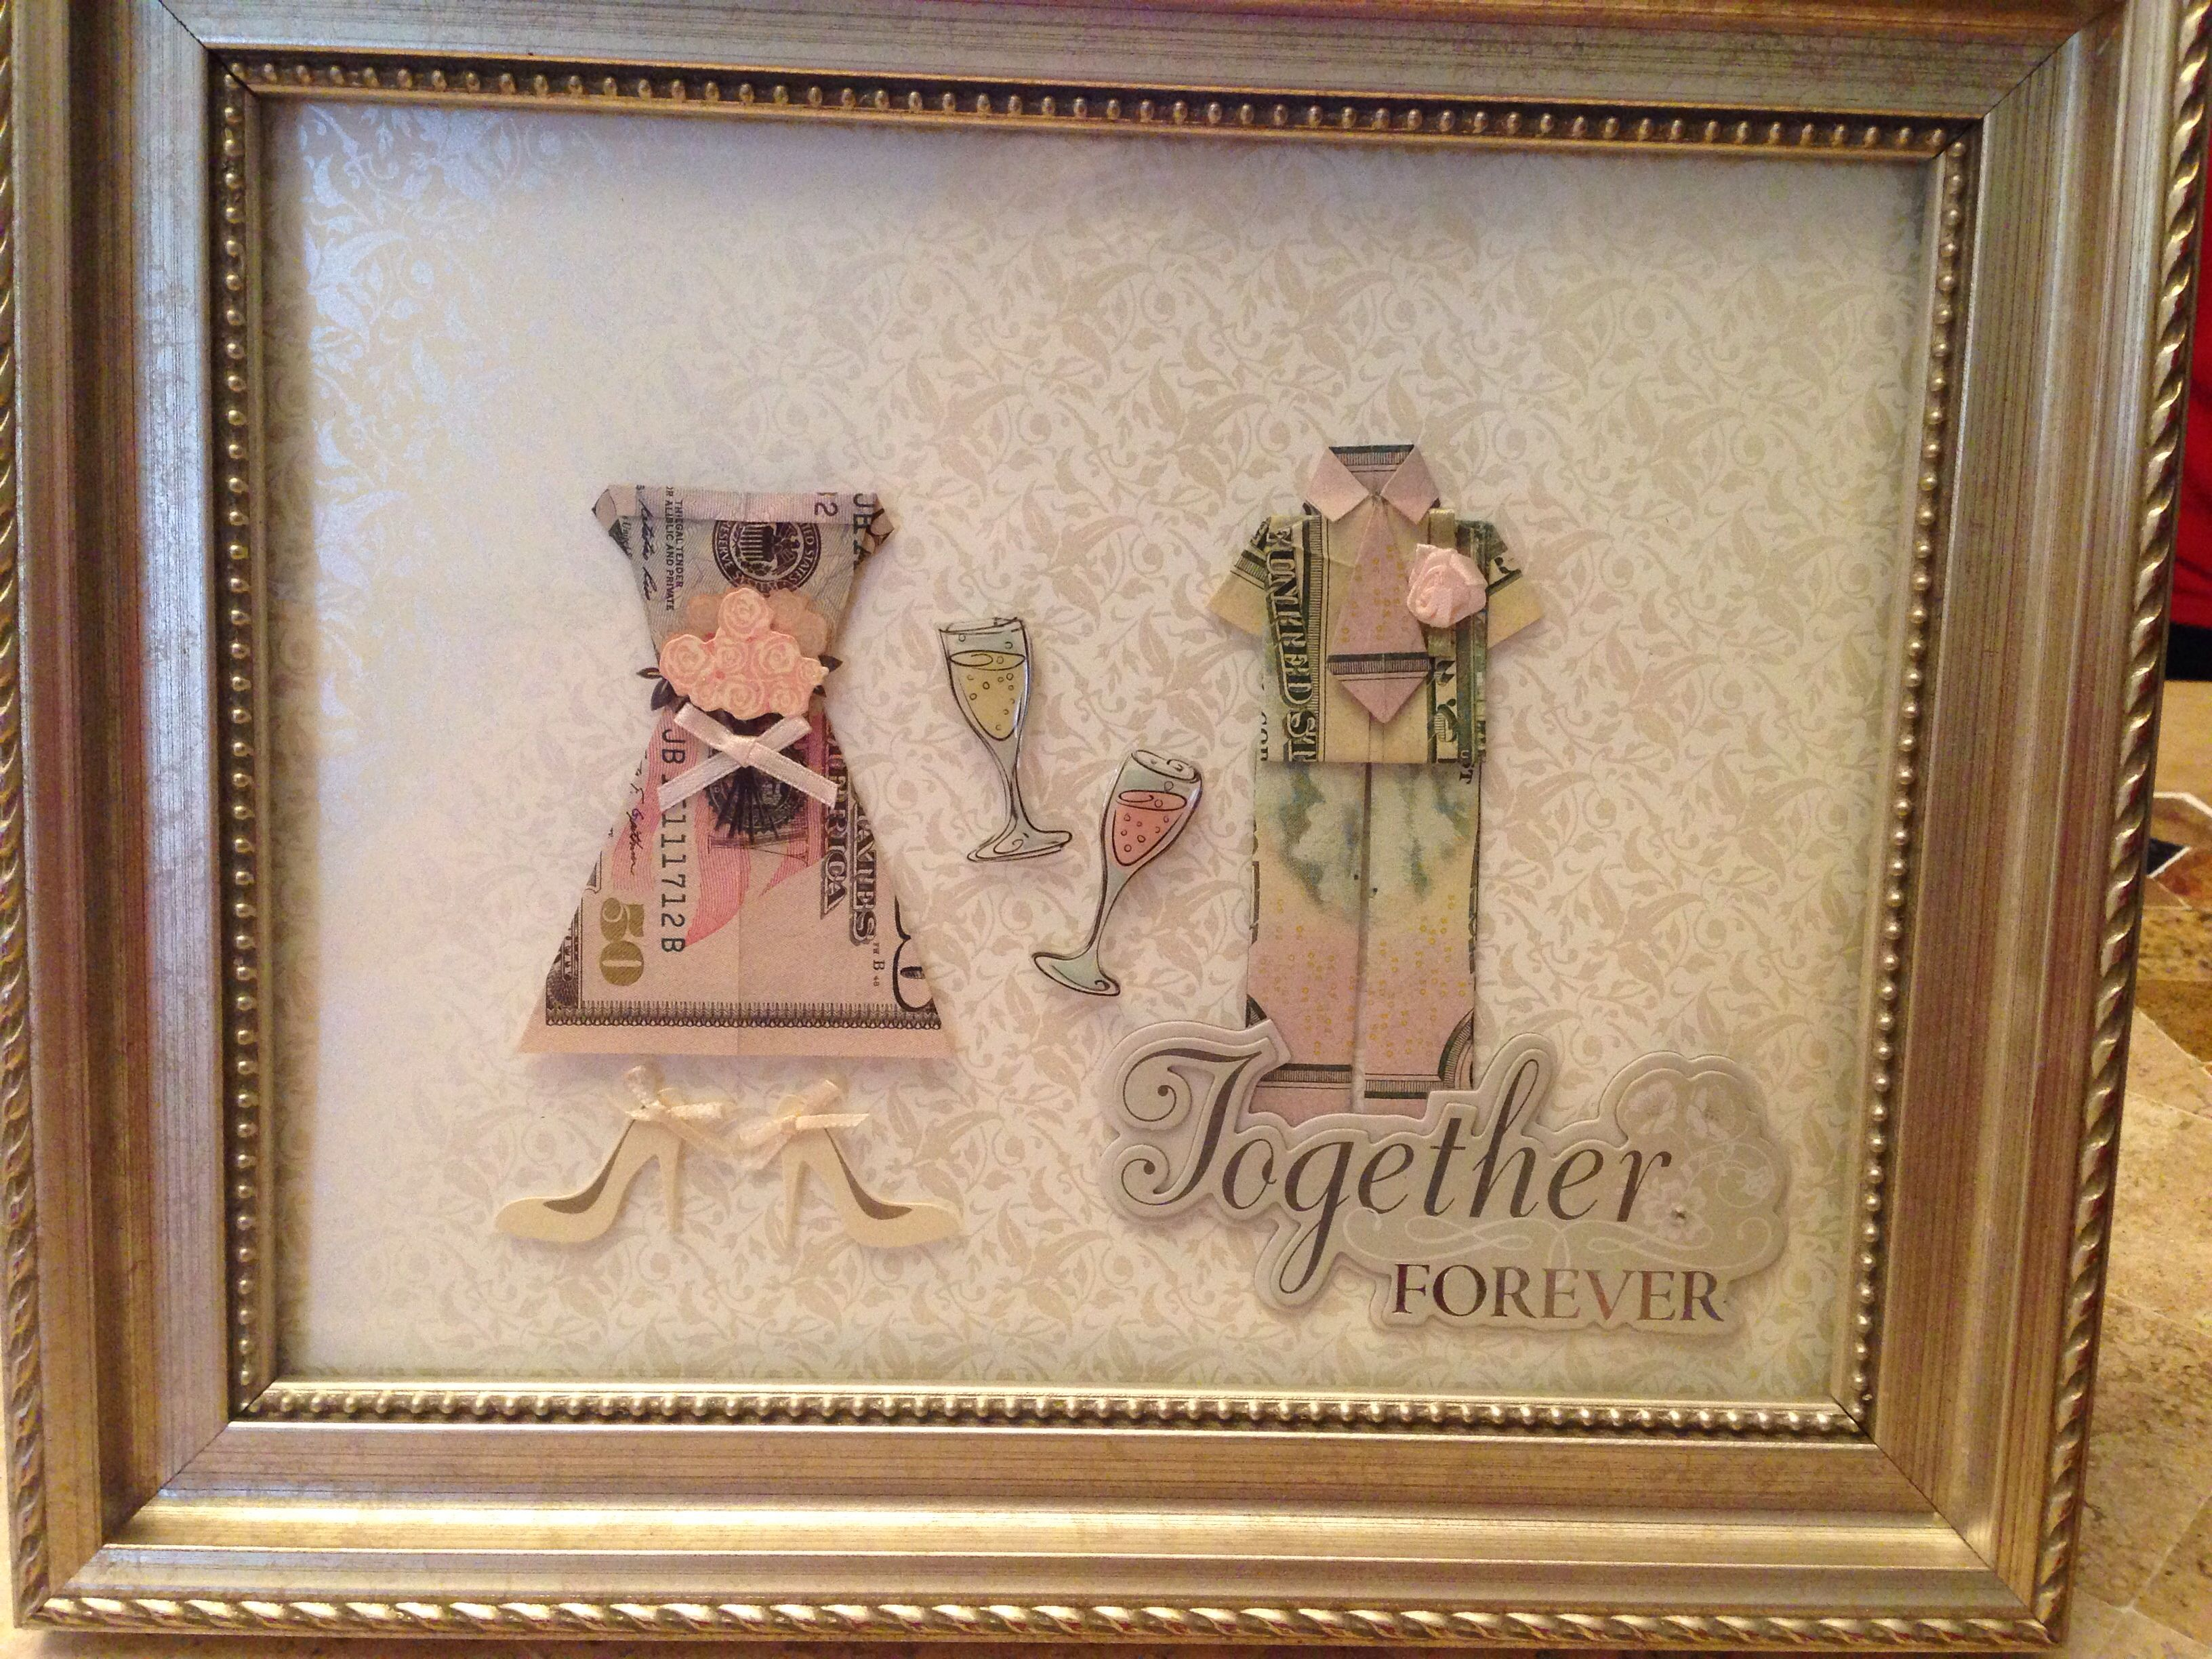 Creative Wedding Gift Ideas To Make: Creative Way To Give Money As A Wedding Gift. Made Out Of